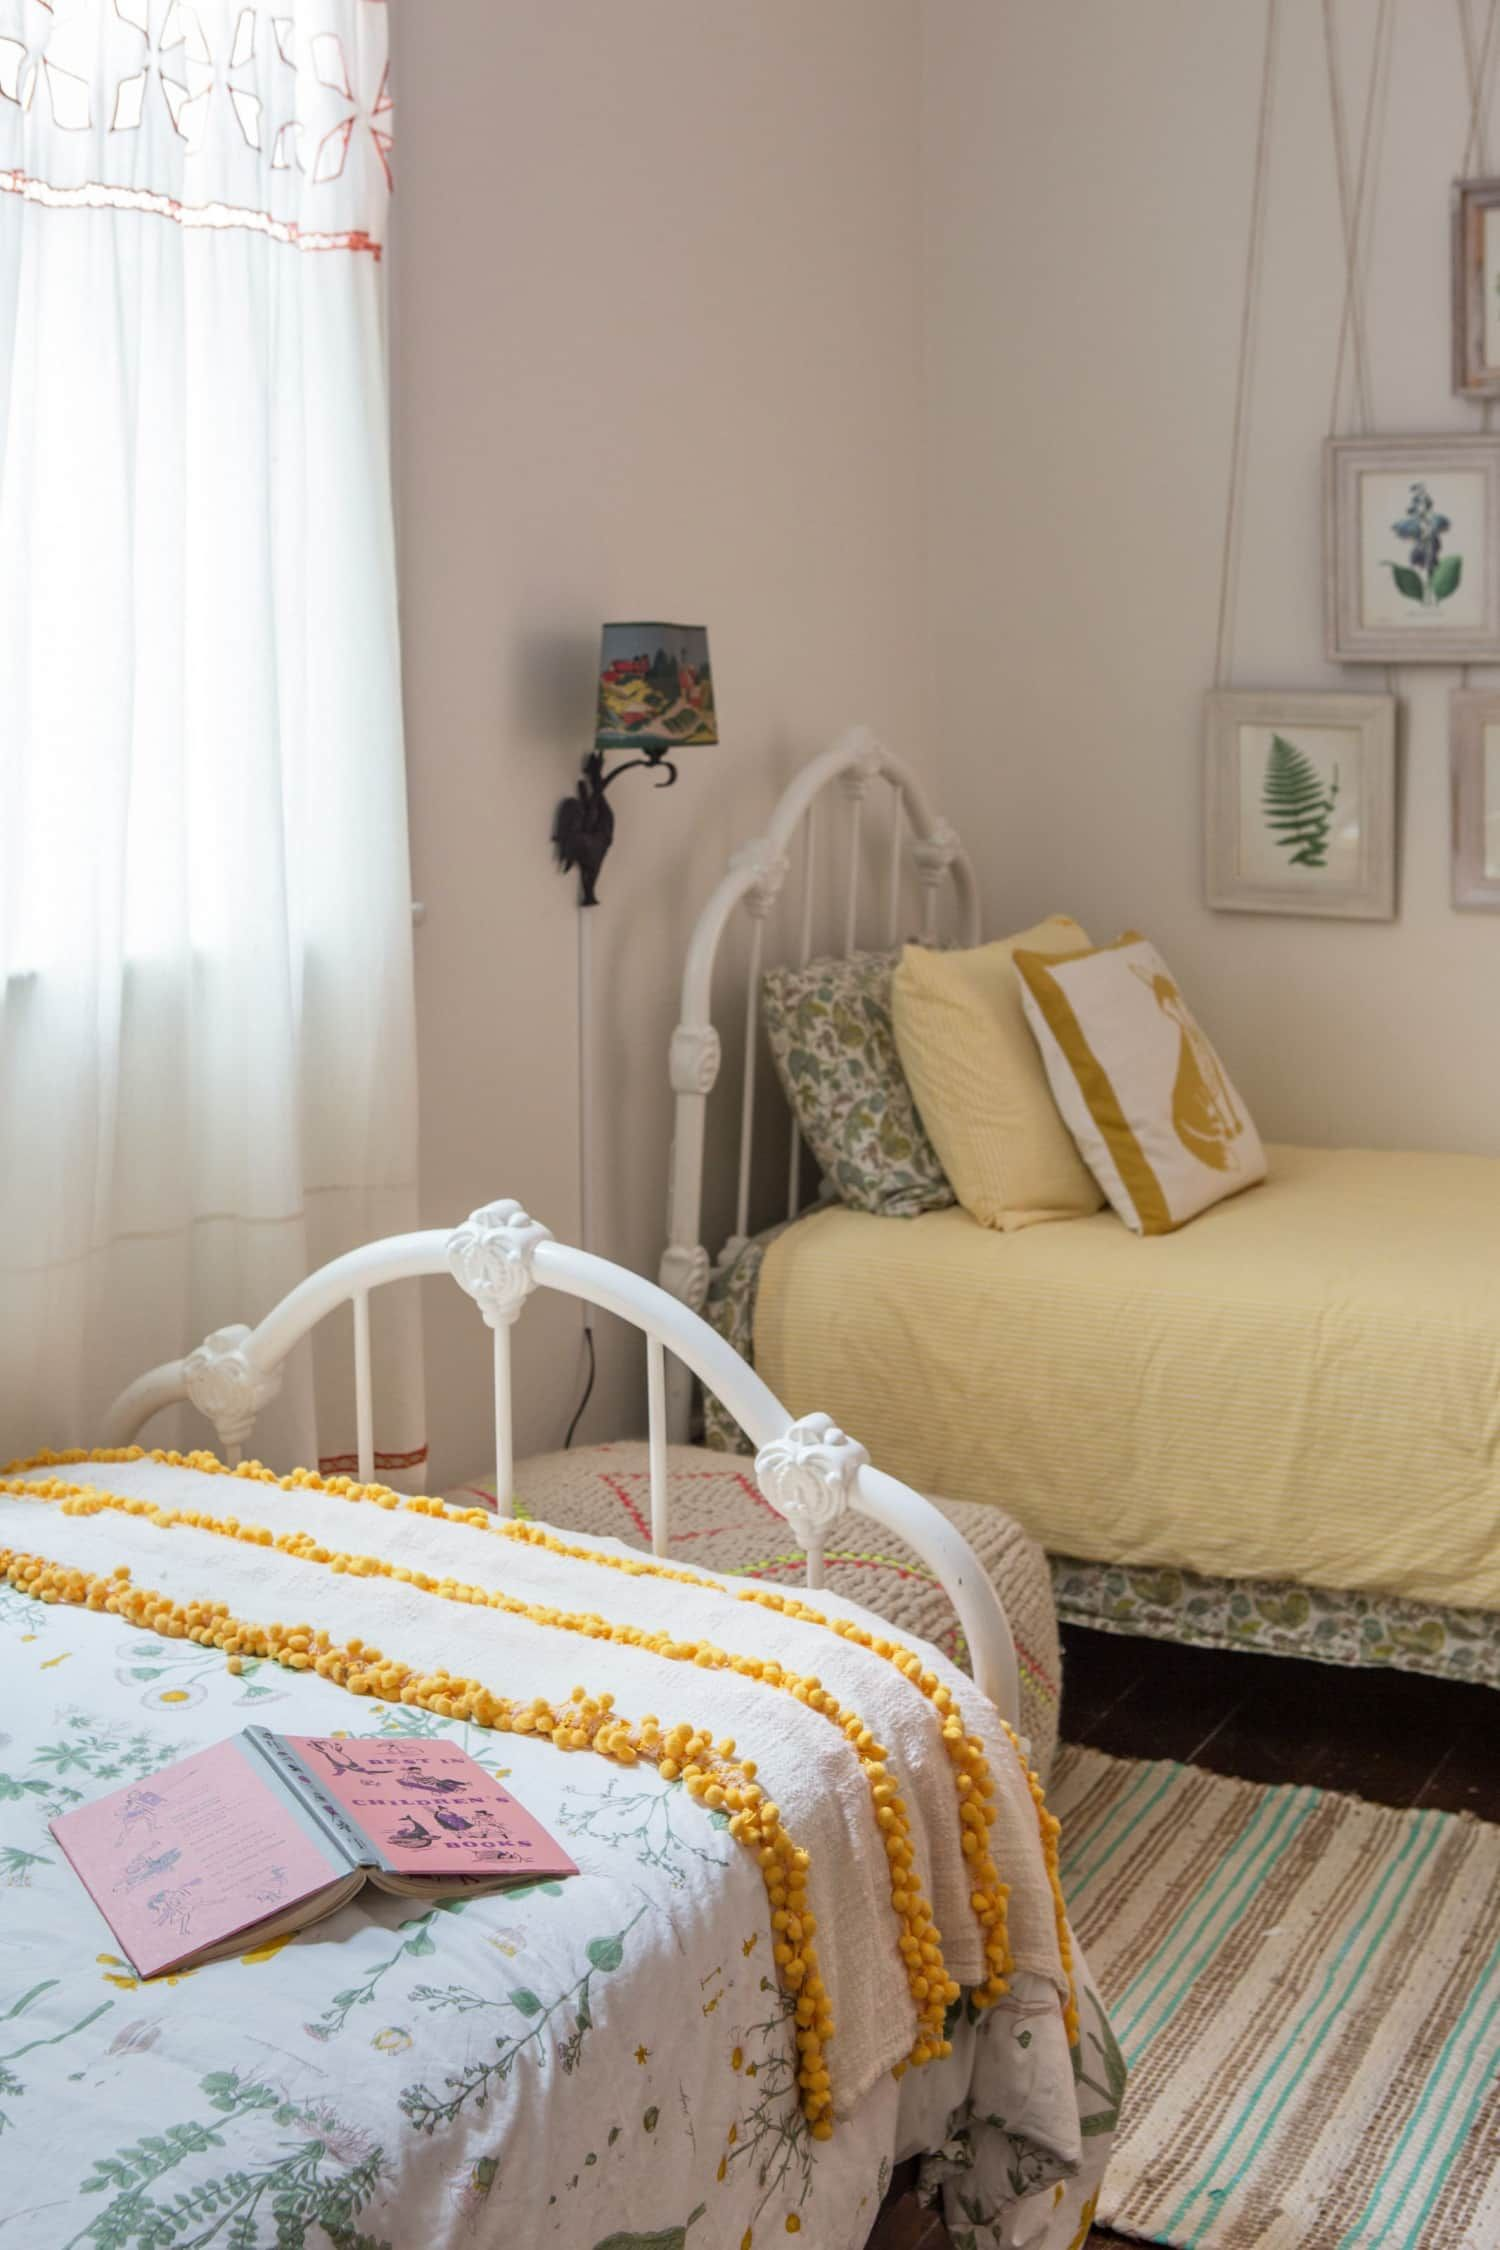 Design Ideas For Doubling Down Rooms With Two Twin Beds Small Room Bedroom Two Twin Beds Small Room Design